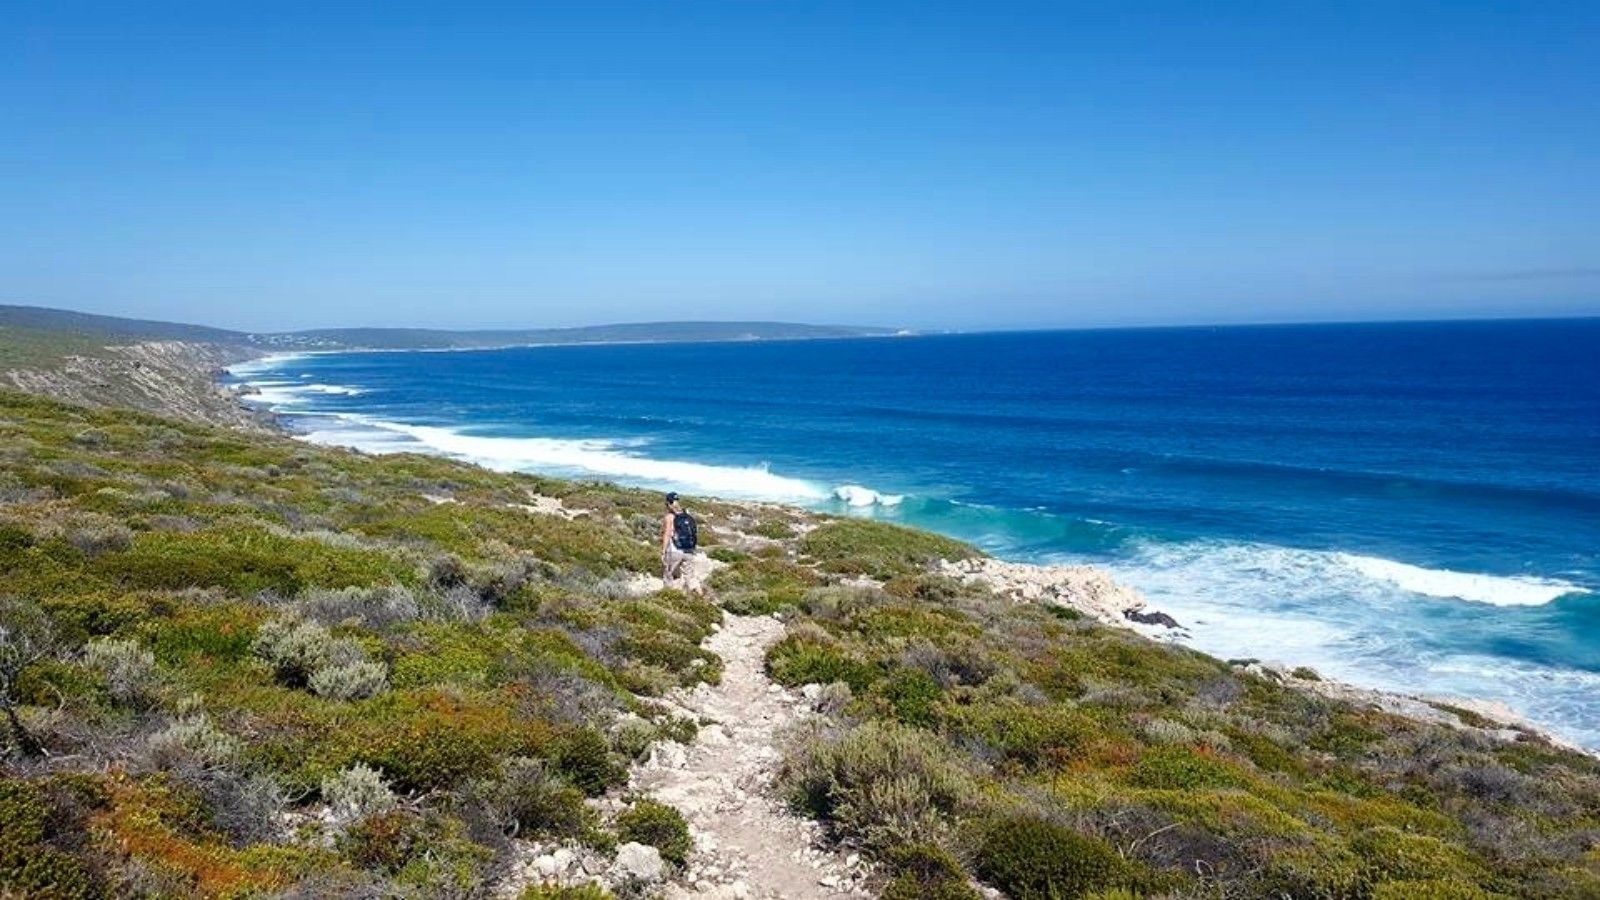 The beach in Margaret River